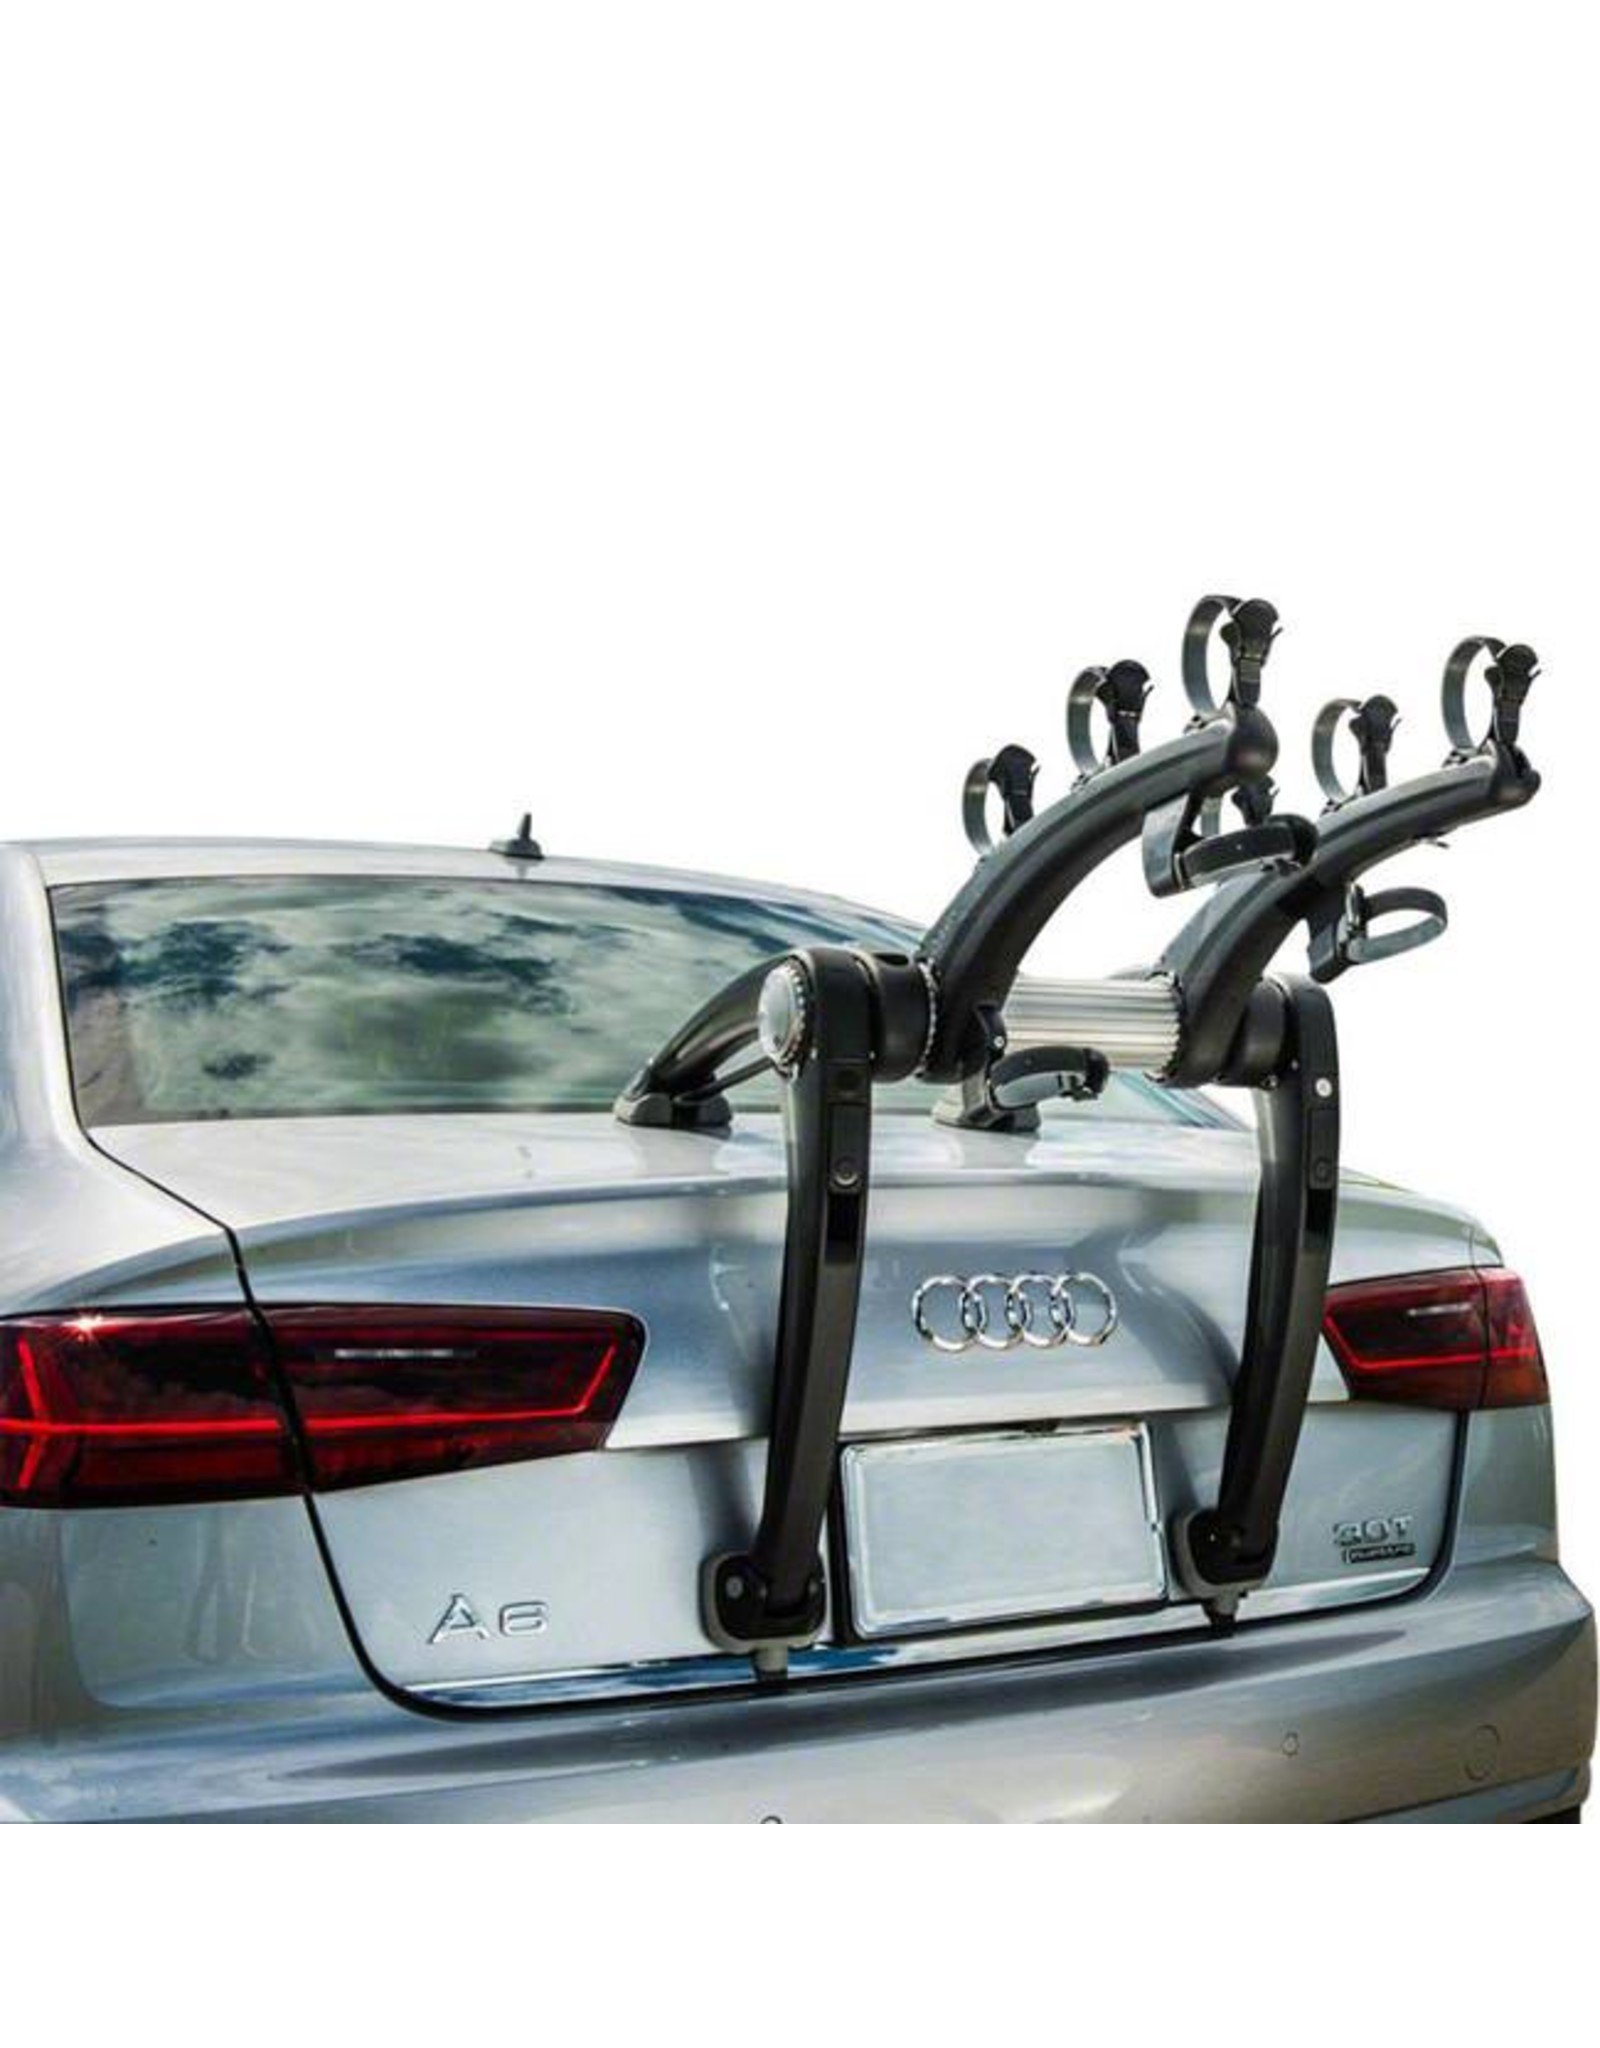 Saris Saris Superbones Trunk Rack: 3 Bike, Black